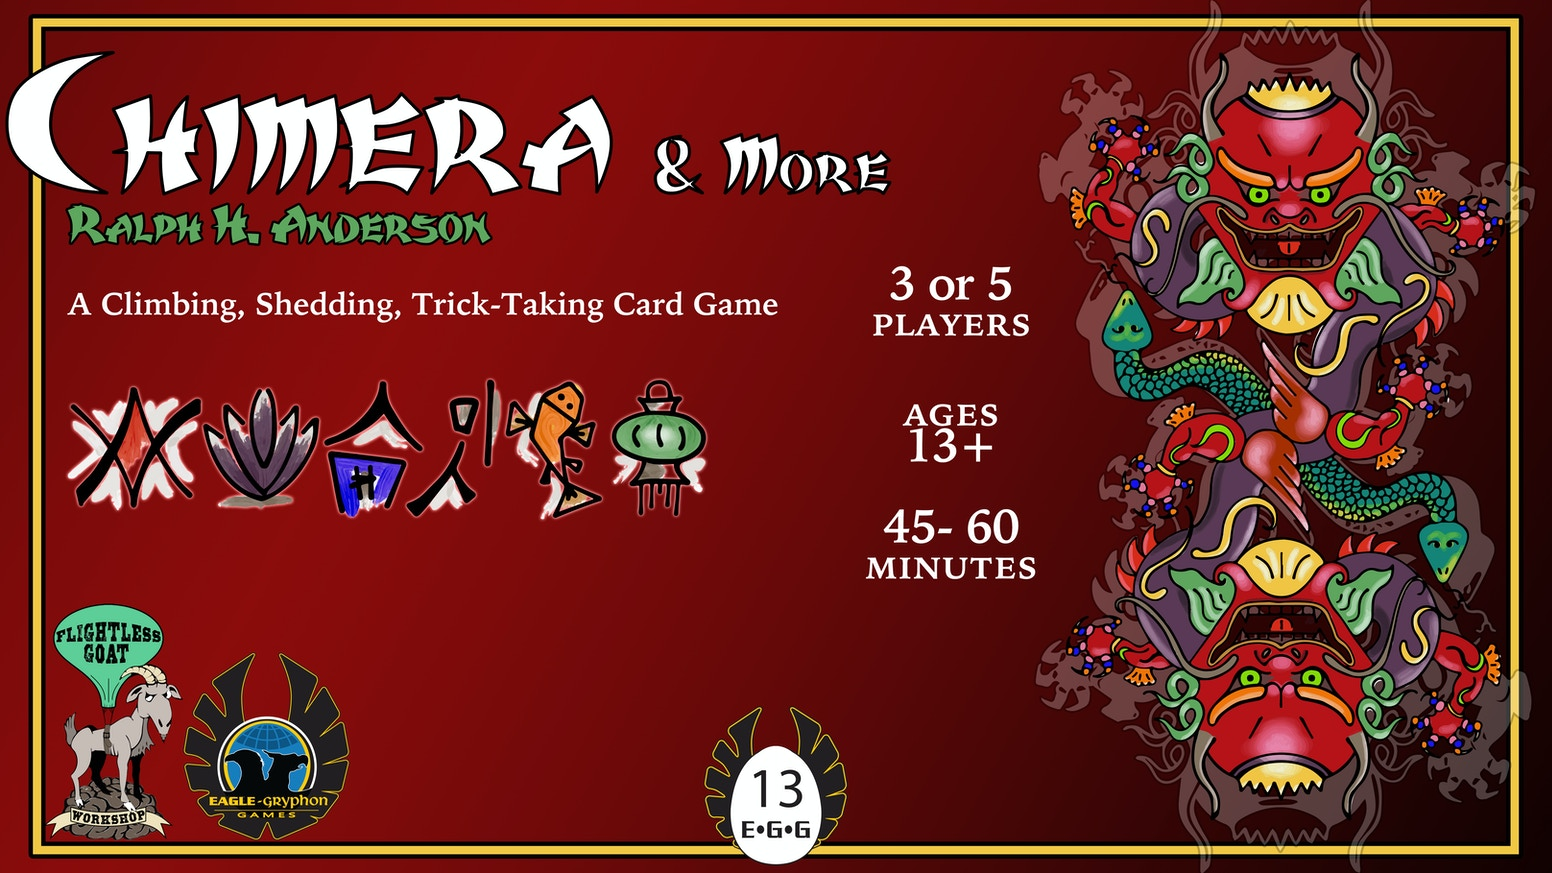 Chimera & More - inspired by Tichu and an entire family of Chinese climbing and shedding card games. For 3 & 5 players only - ages 13+